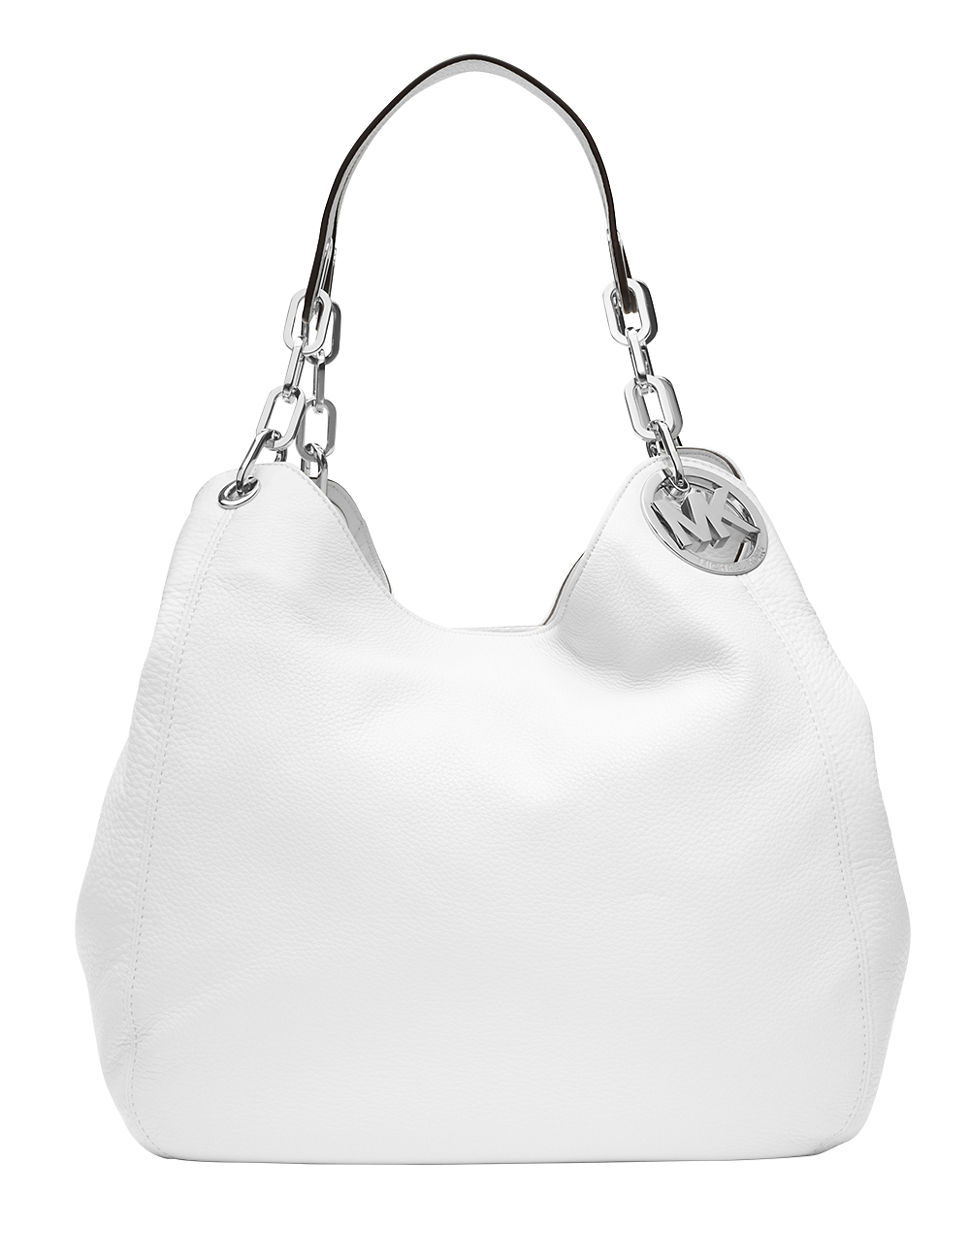 abb64ba197 ... discount code for lyst michael michael kors fulton leather large tote  bag in white 4b203 2f0df